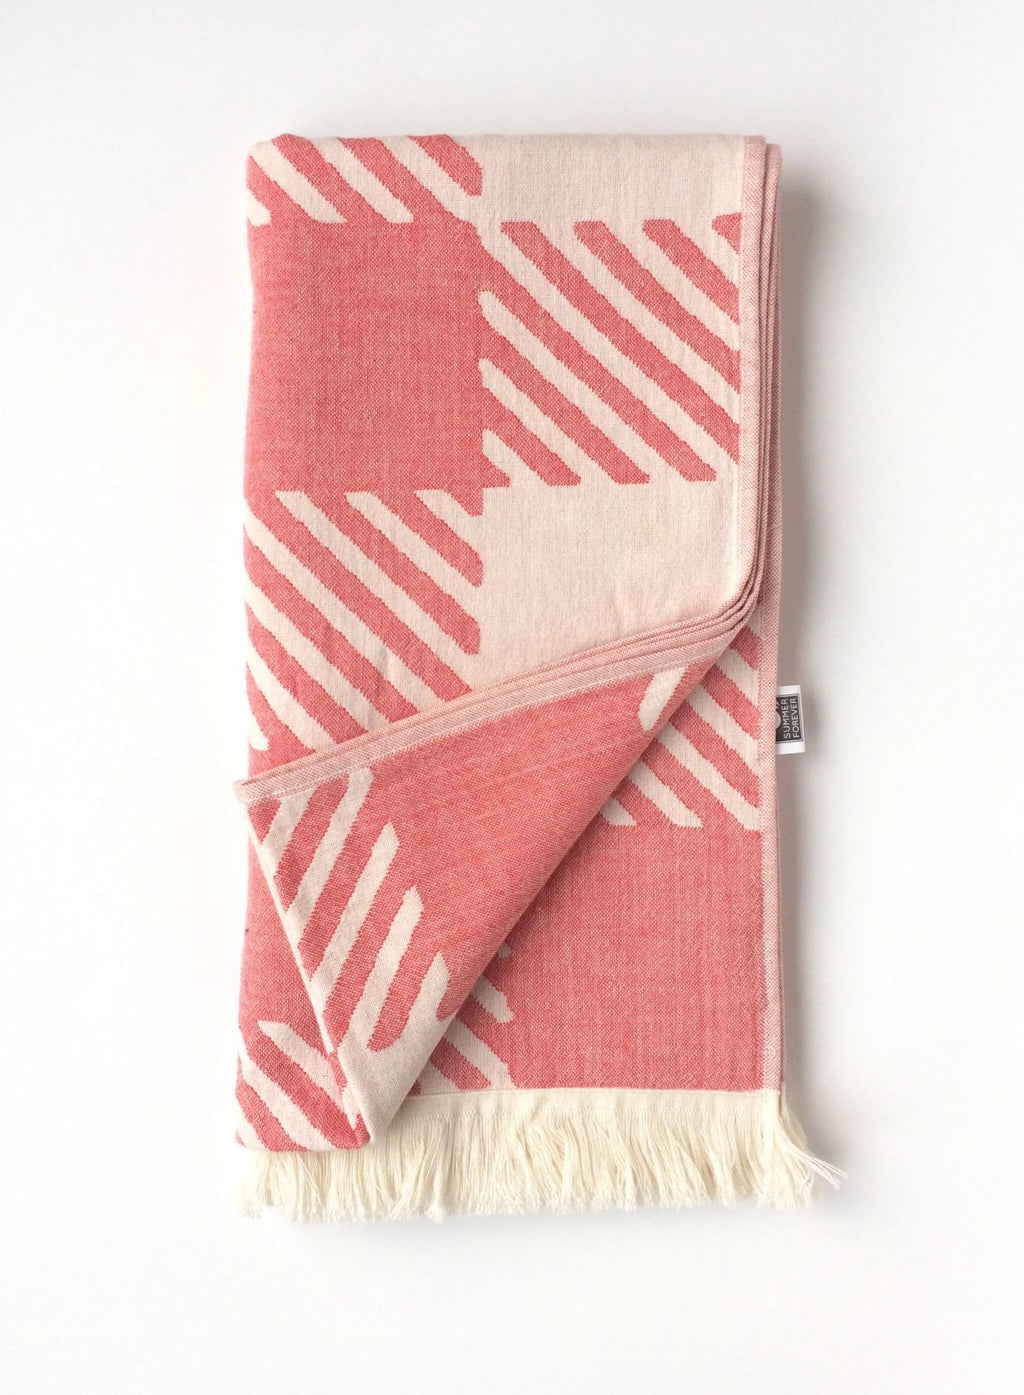 Check design, Red, Turkish Towel, Gingham, Checkers, Plaid, reversable Travel, Bath, Toronto Canada